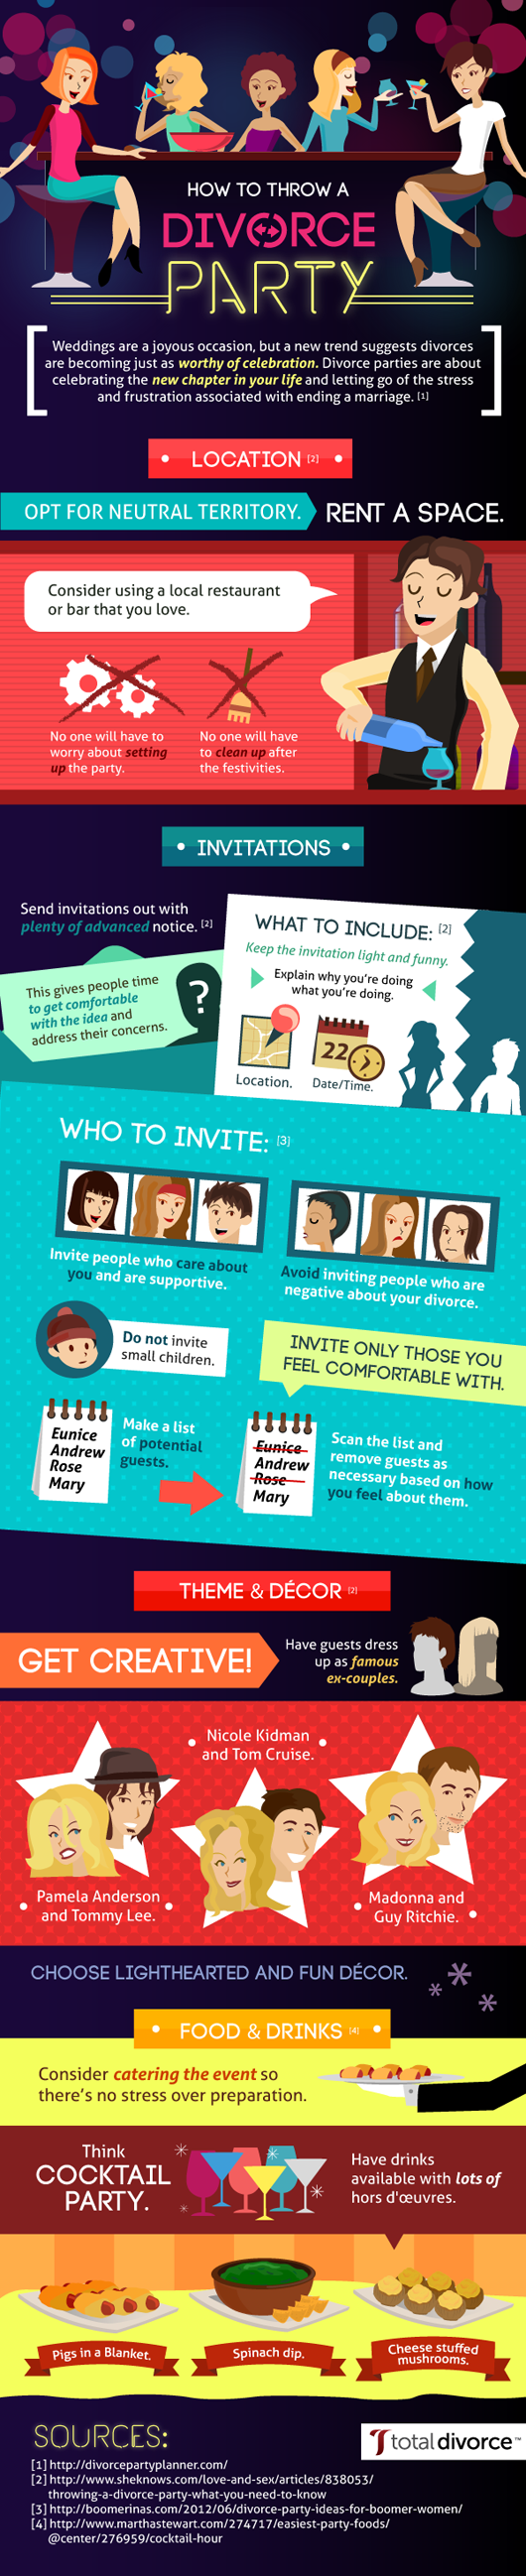 How to Throw a Divorce Party-Infographic